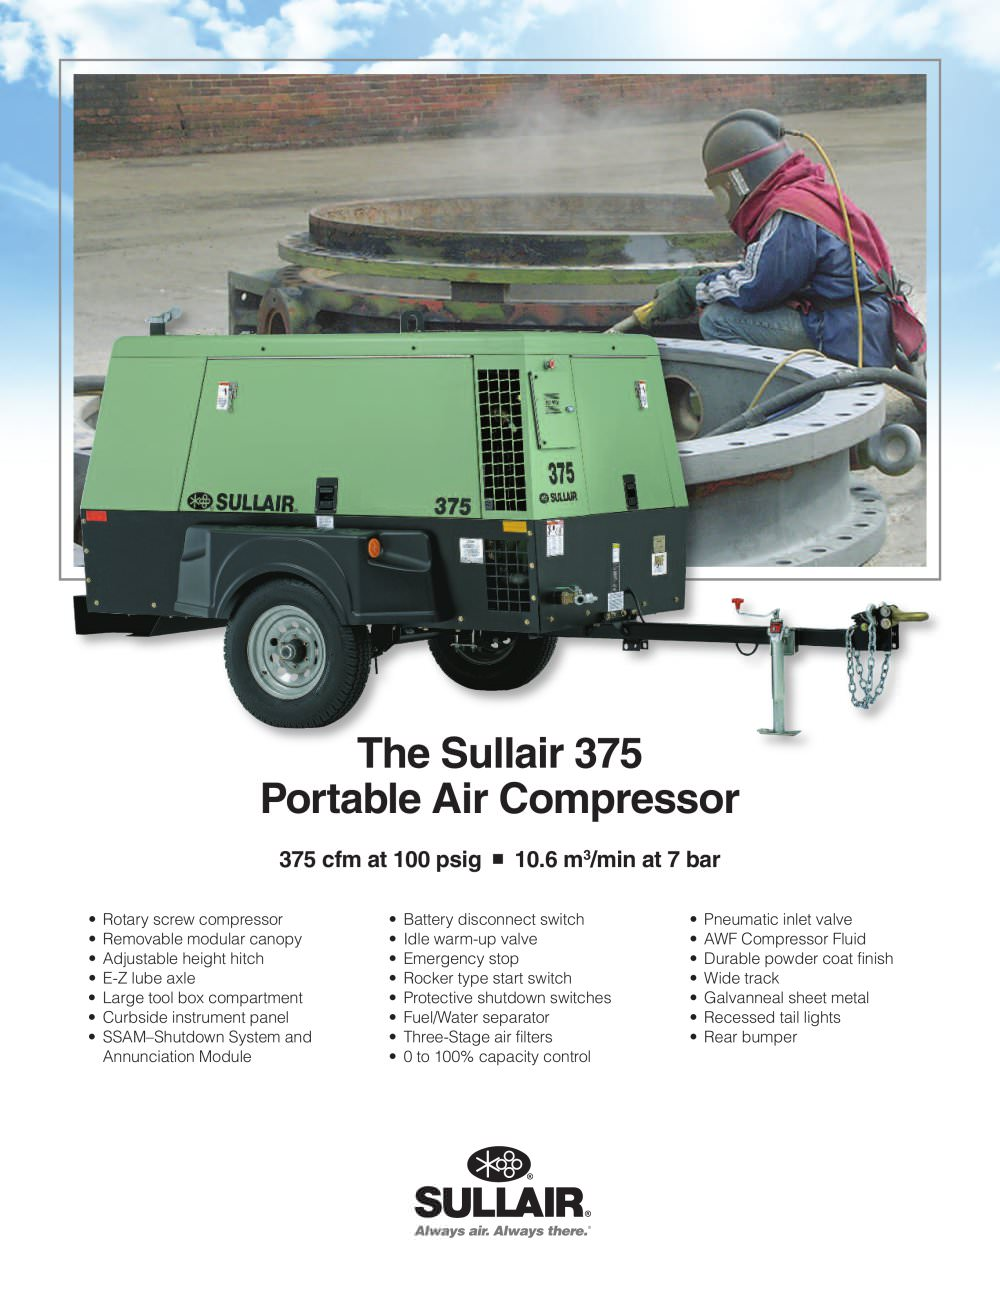 The Sullair 375 Portable Air Compressor - 1 / 2 Pages